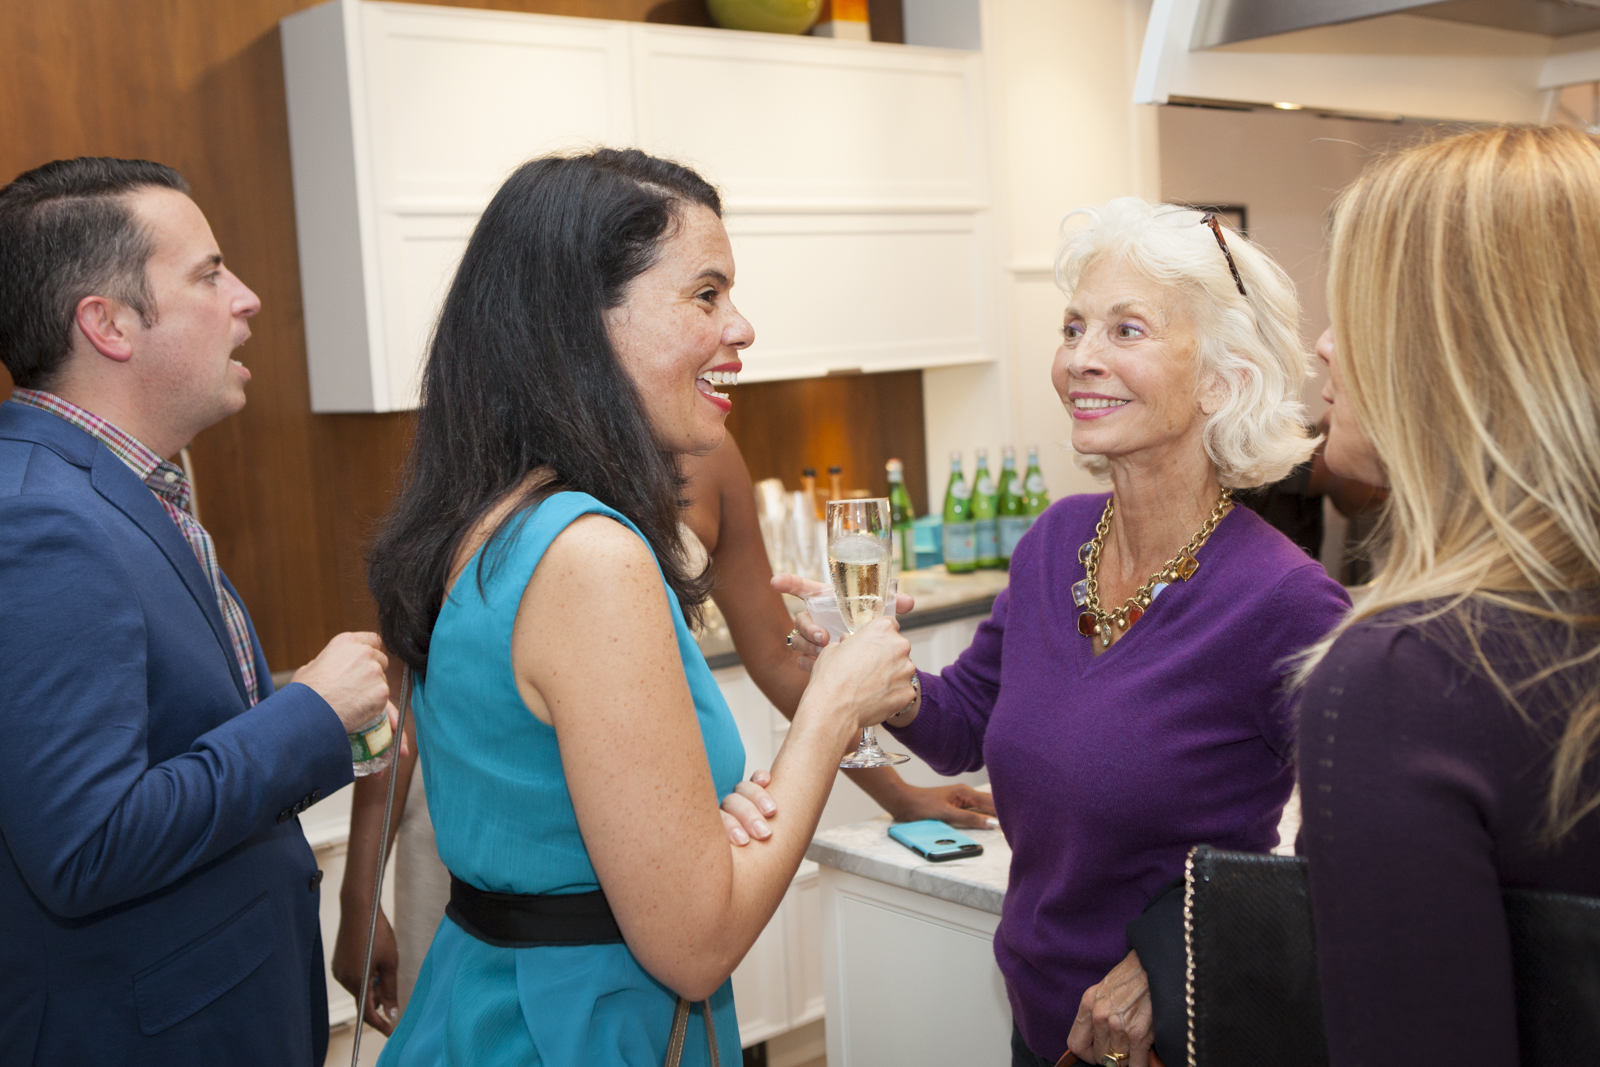 Artist Maureen Chatfield, talking with other guests